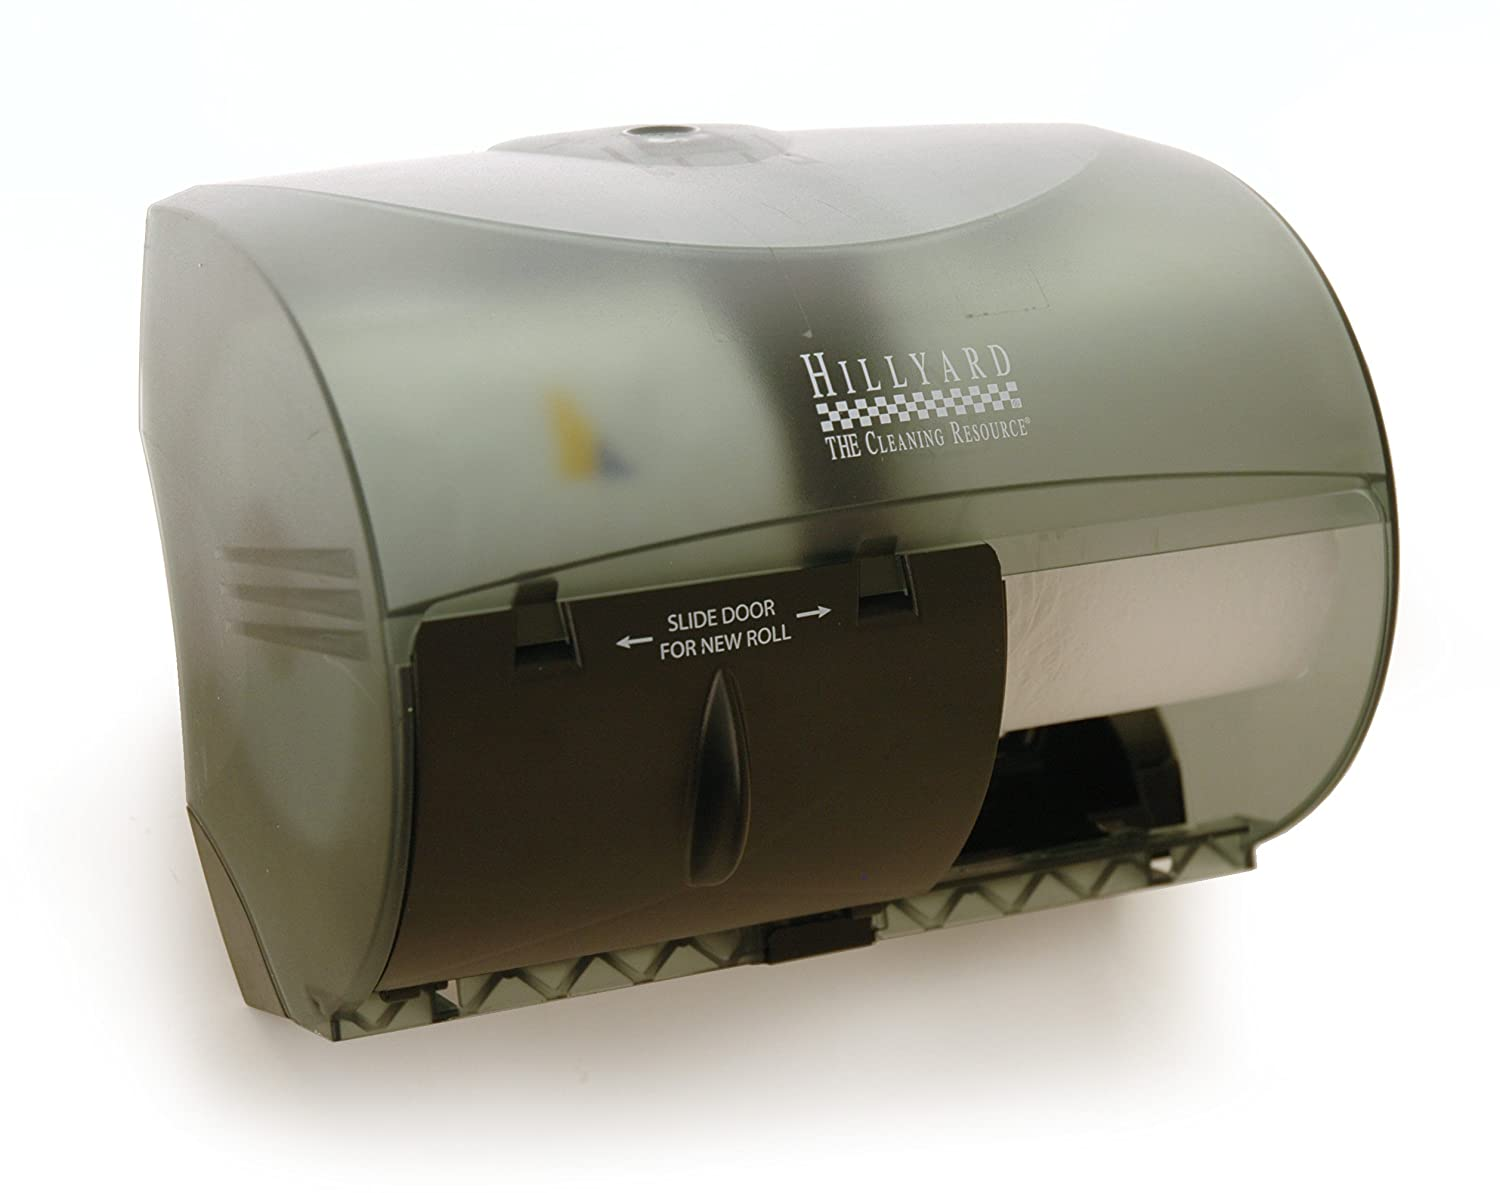 2 Roll Tissue Dispenser Translucent Smoke Side-By-Side Double Roll Bathroom Tissue Dispenser Hillyard Industries 42525